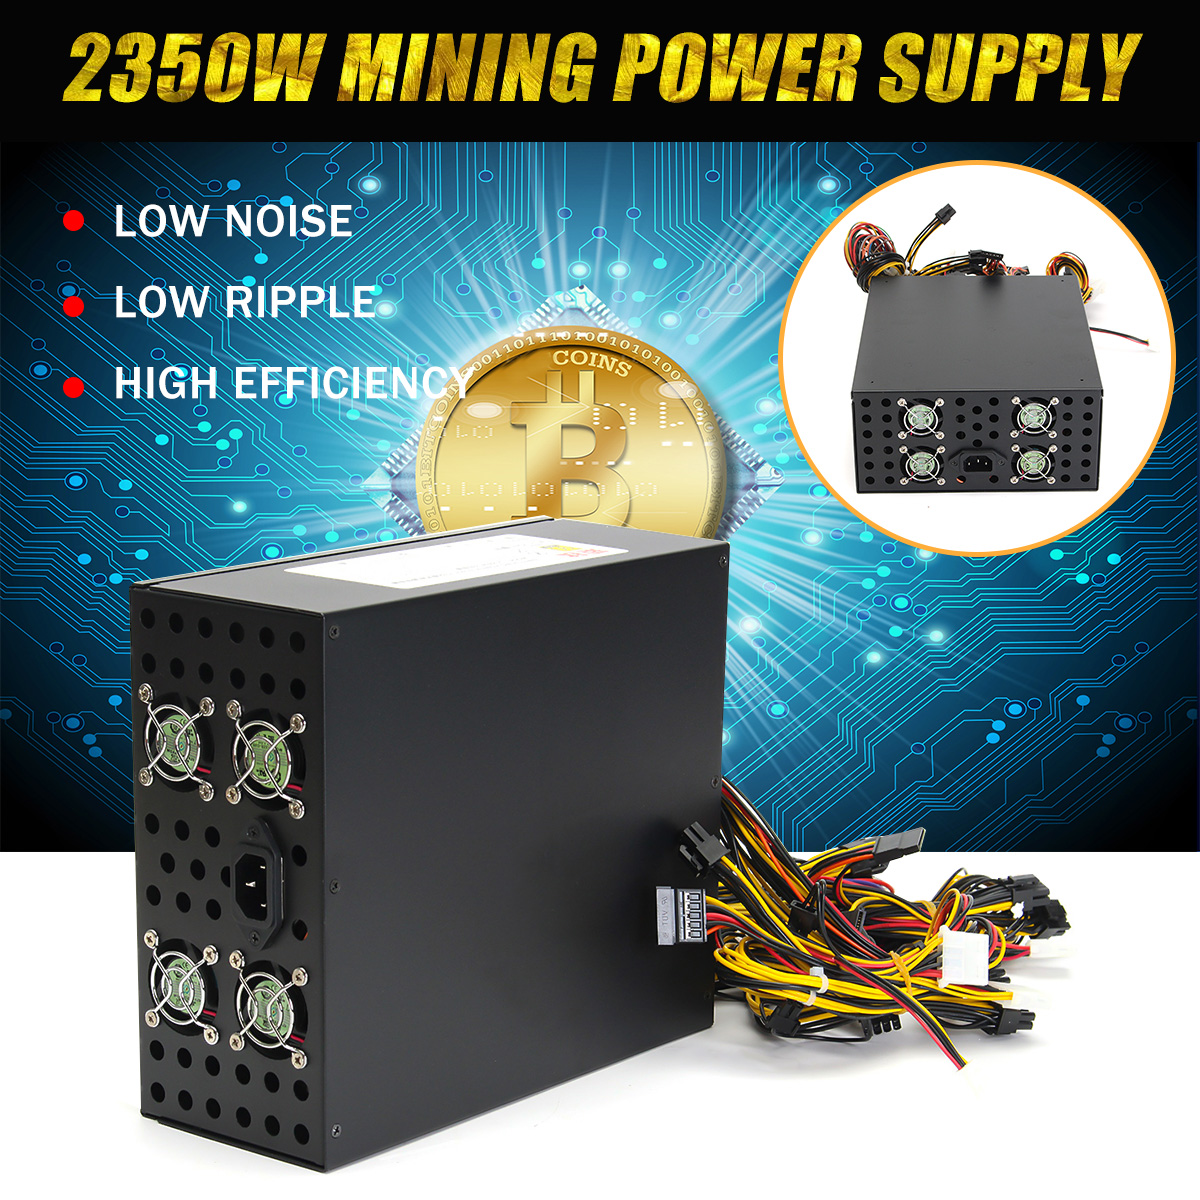 LEORY 1Pcs 2350W Power Supply For Eth Rig Ethereum Coin Mining Miner Dedicated Machine Computer PC Power Supplies For BTC high quality 1300w power supply for 6 gpu eth rig ethereum coin mining miner dedicated machine new computer power supply for btc